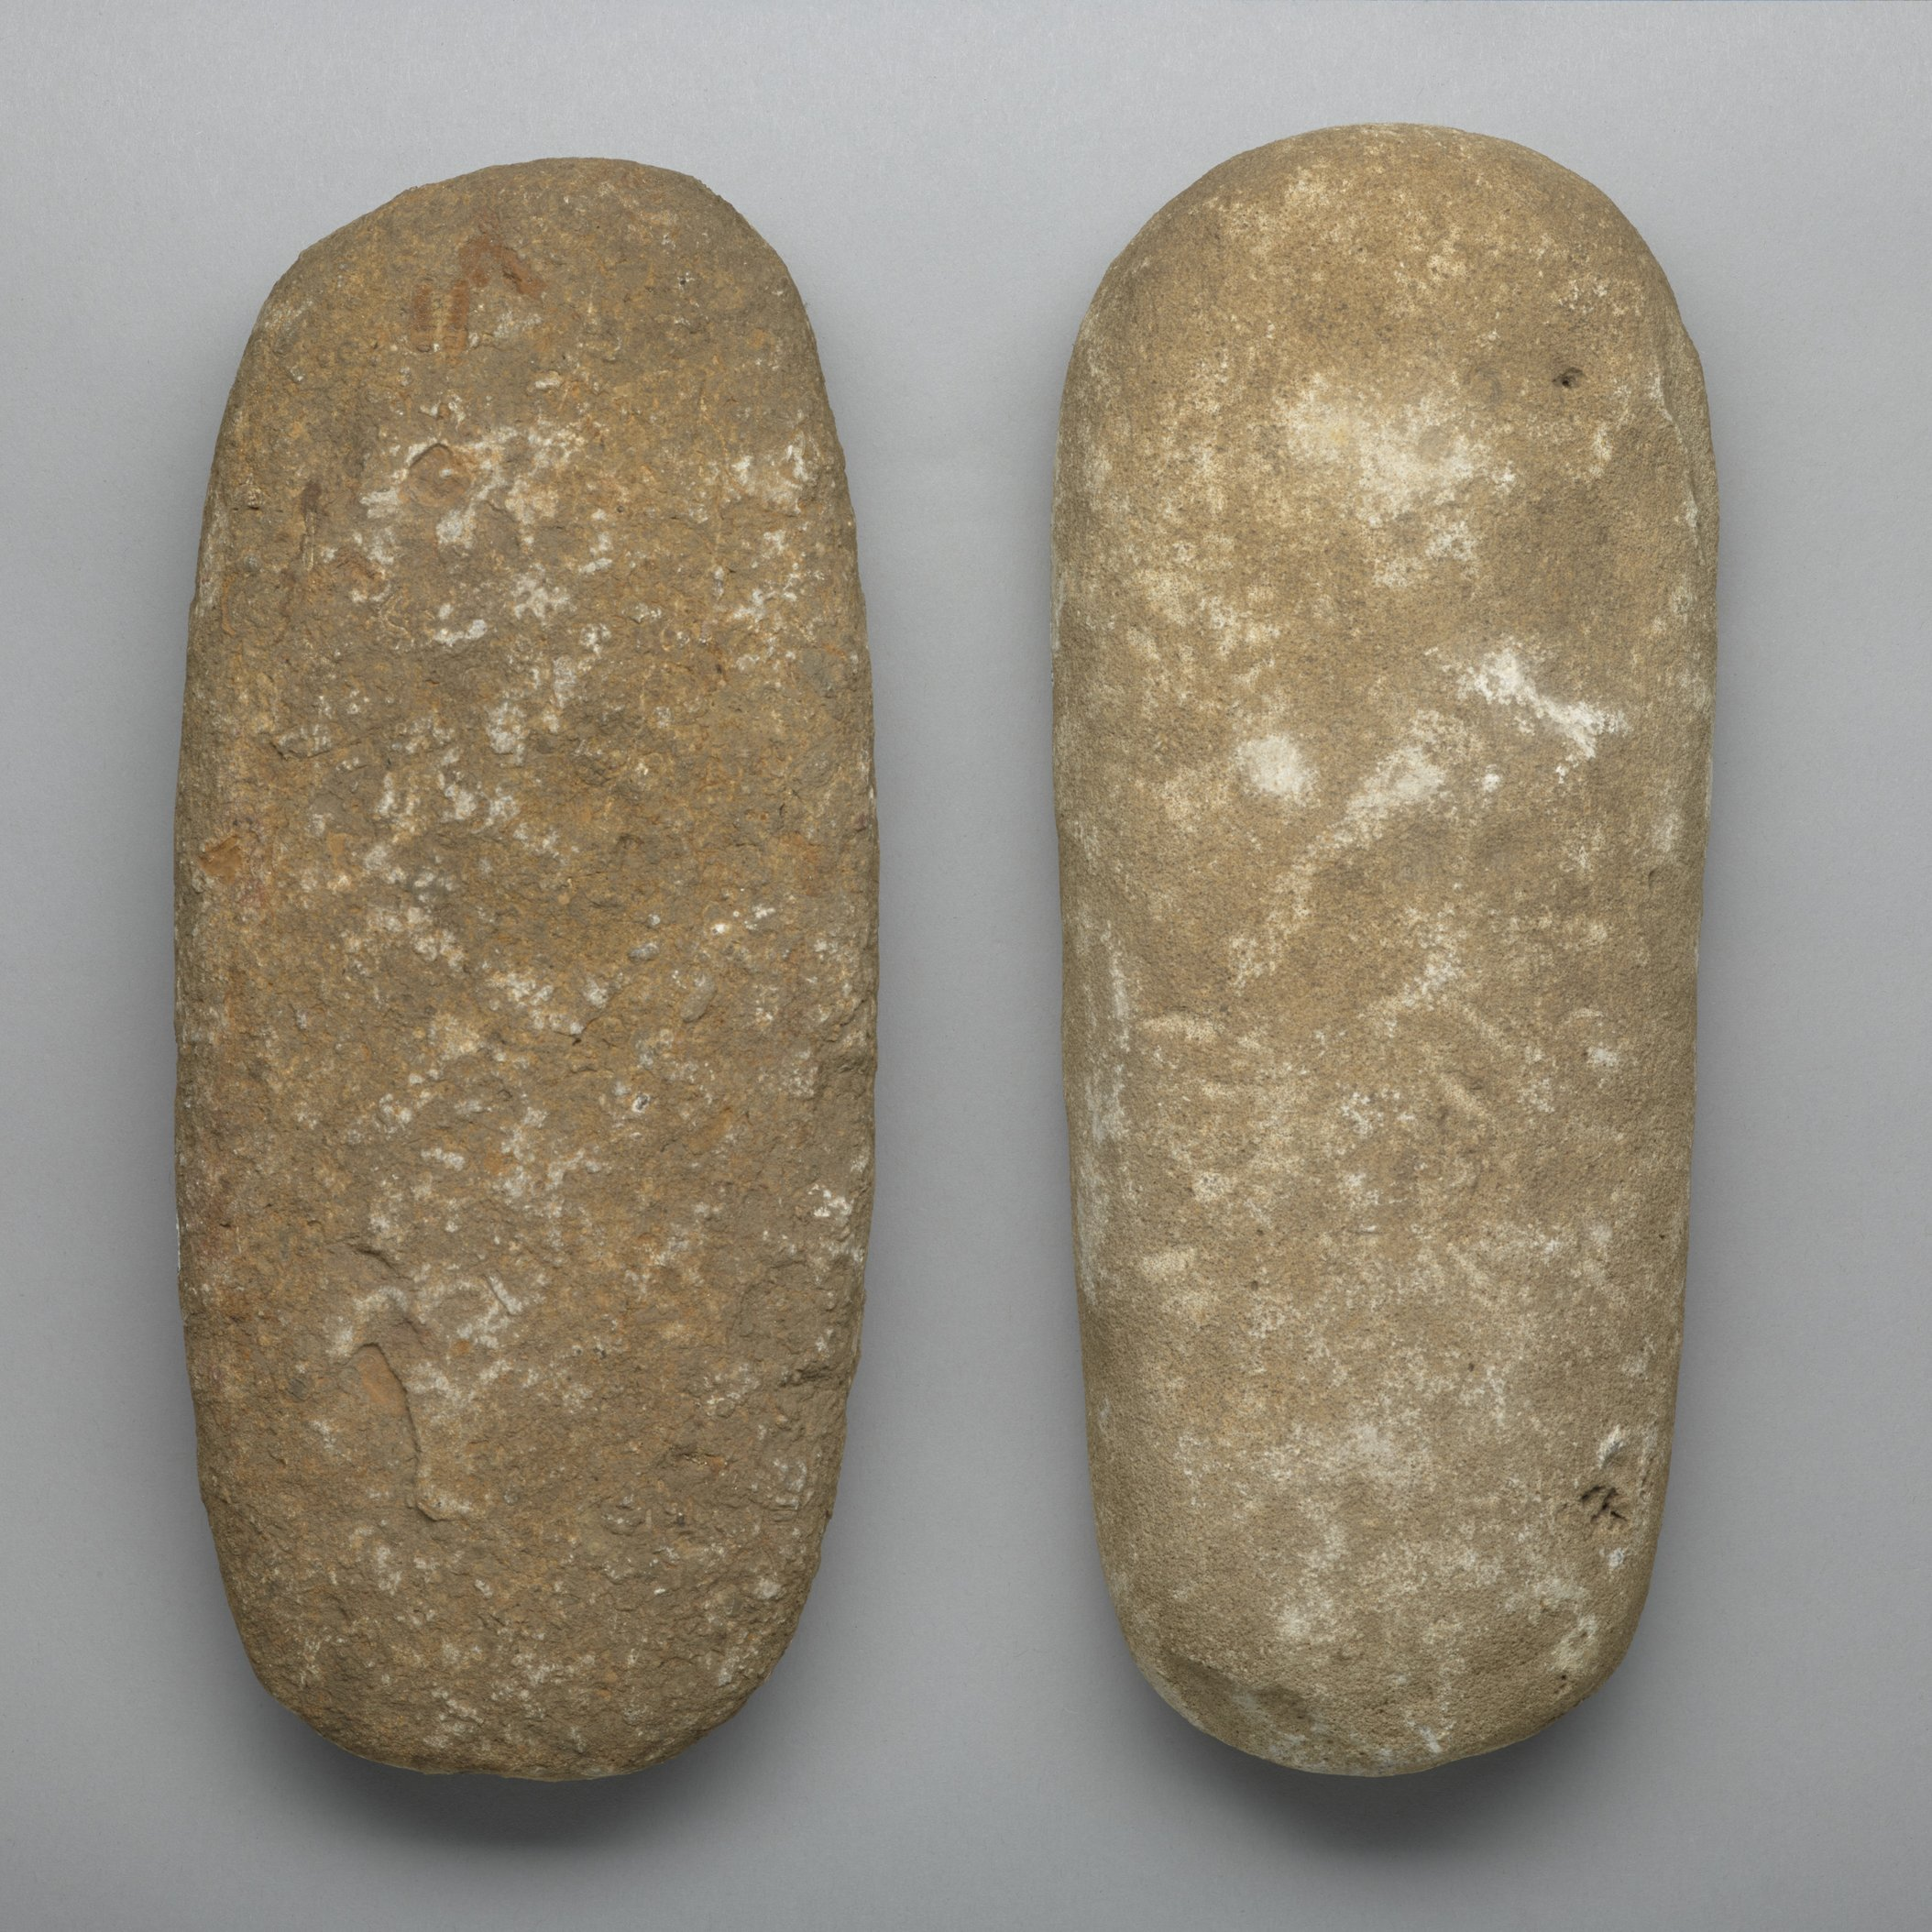 Manos from the Neodesha Fort Site, 14WN1 - 1